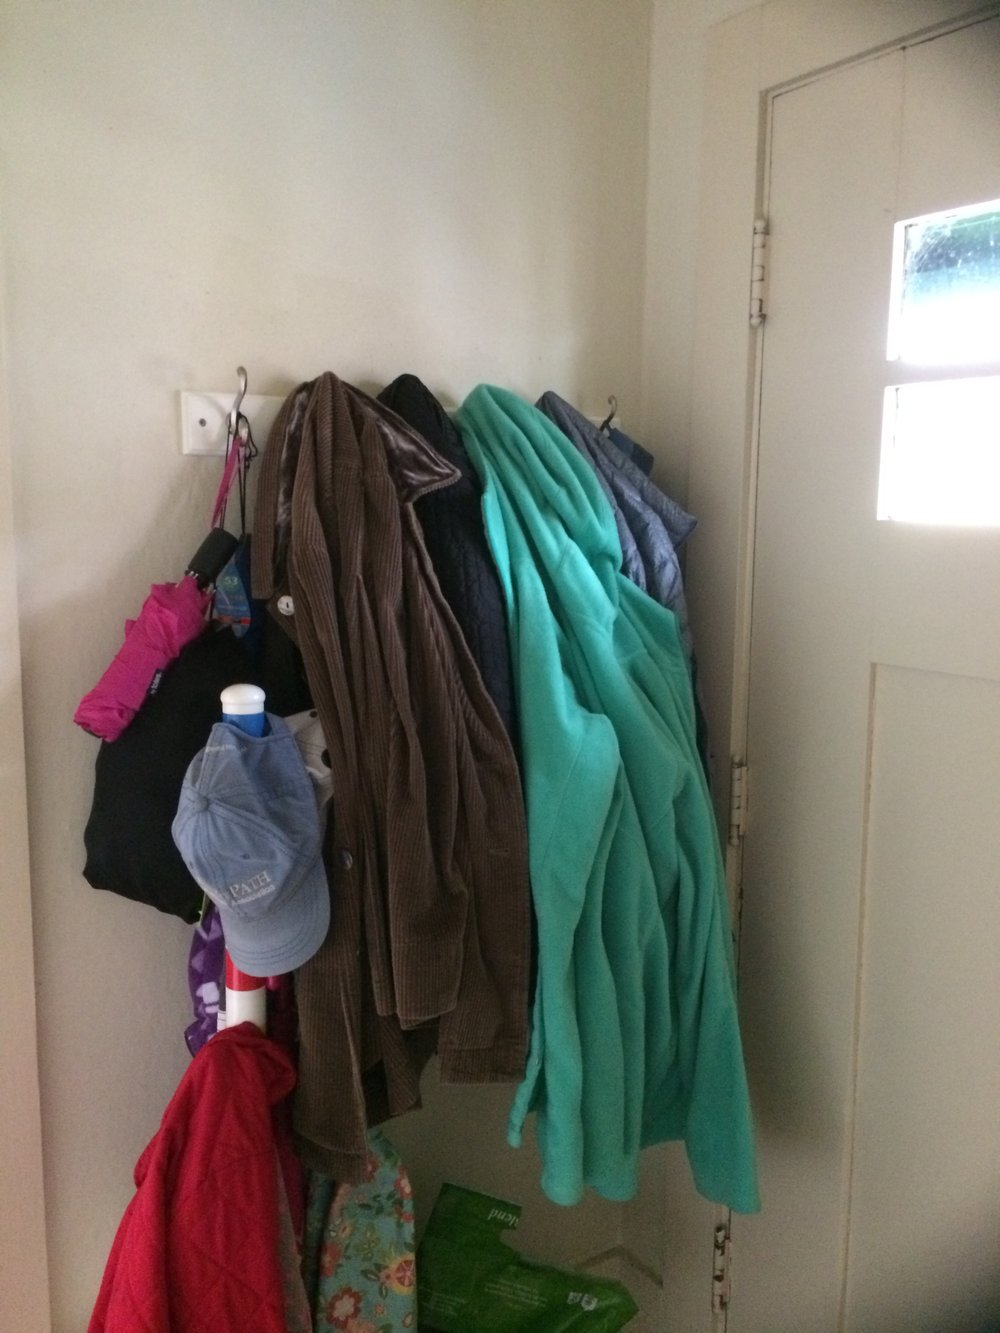 Coat rack with inaccessible coats a few layers deep.